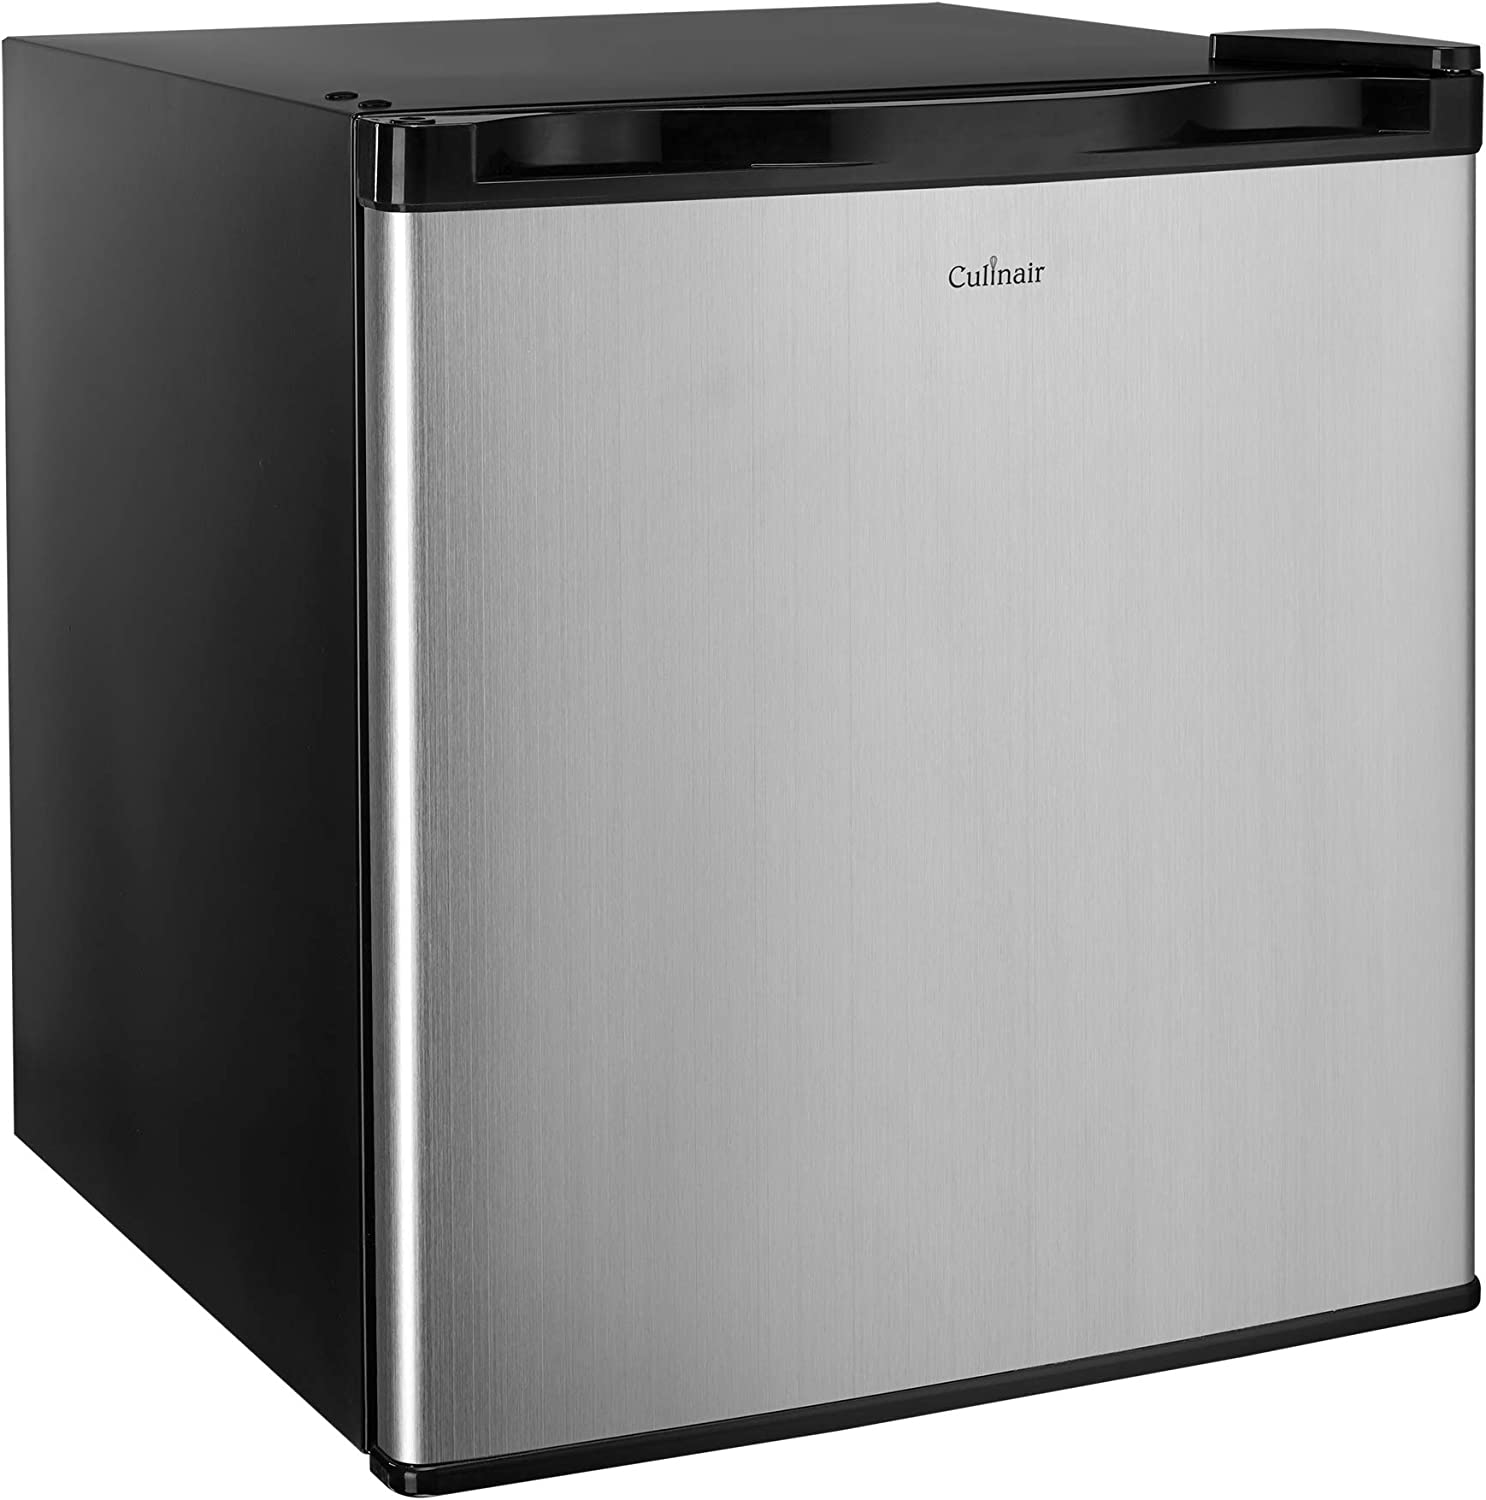 Culinair AF160S 1.6 Cubic Feet Philadelphia Mall Limited time sale Compact Refrigerator 1.6C Black